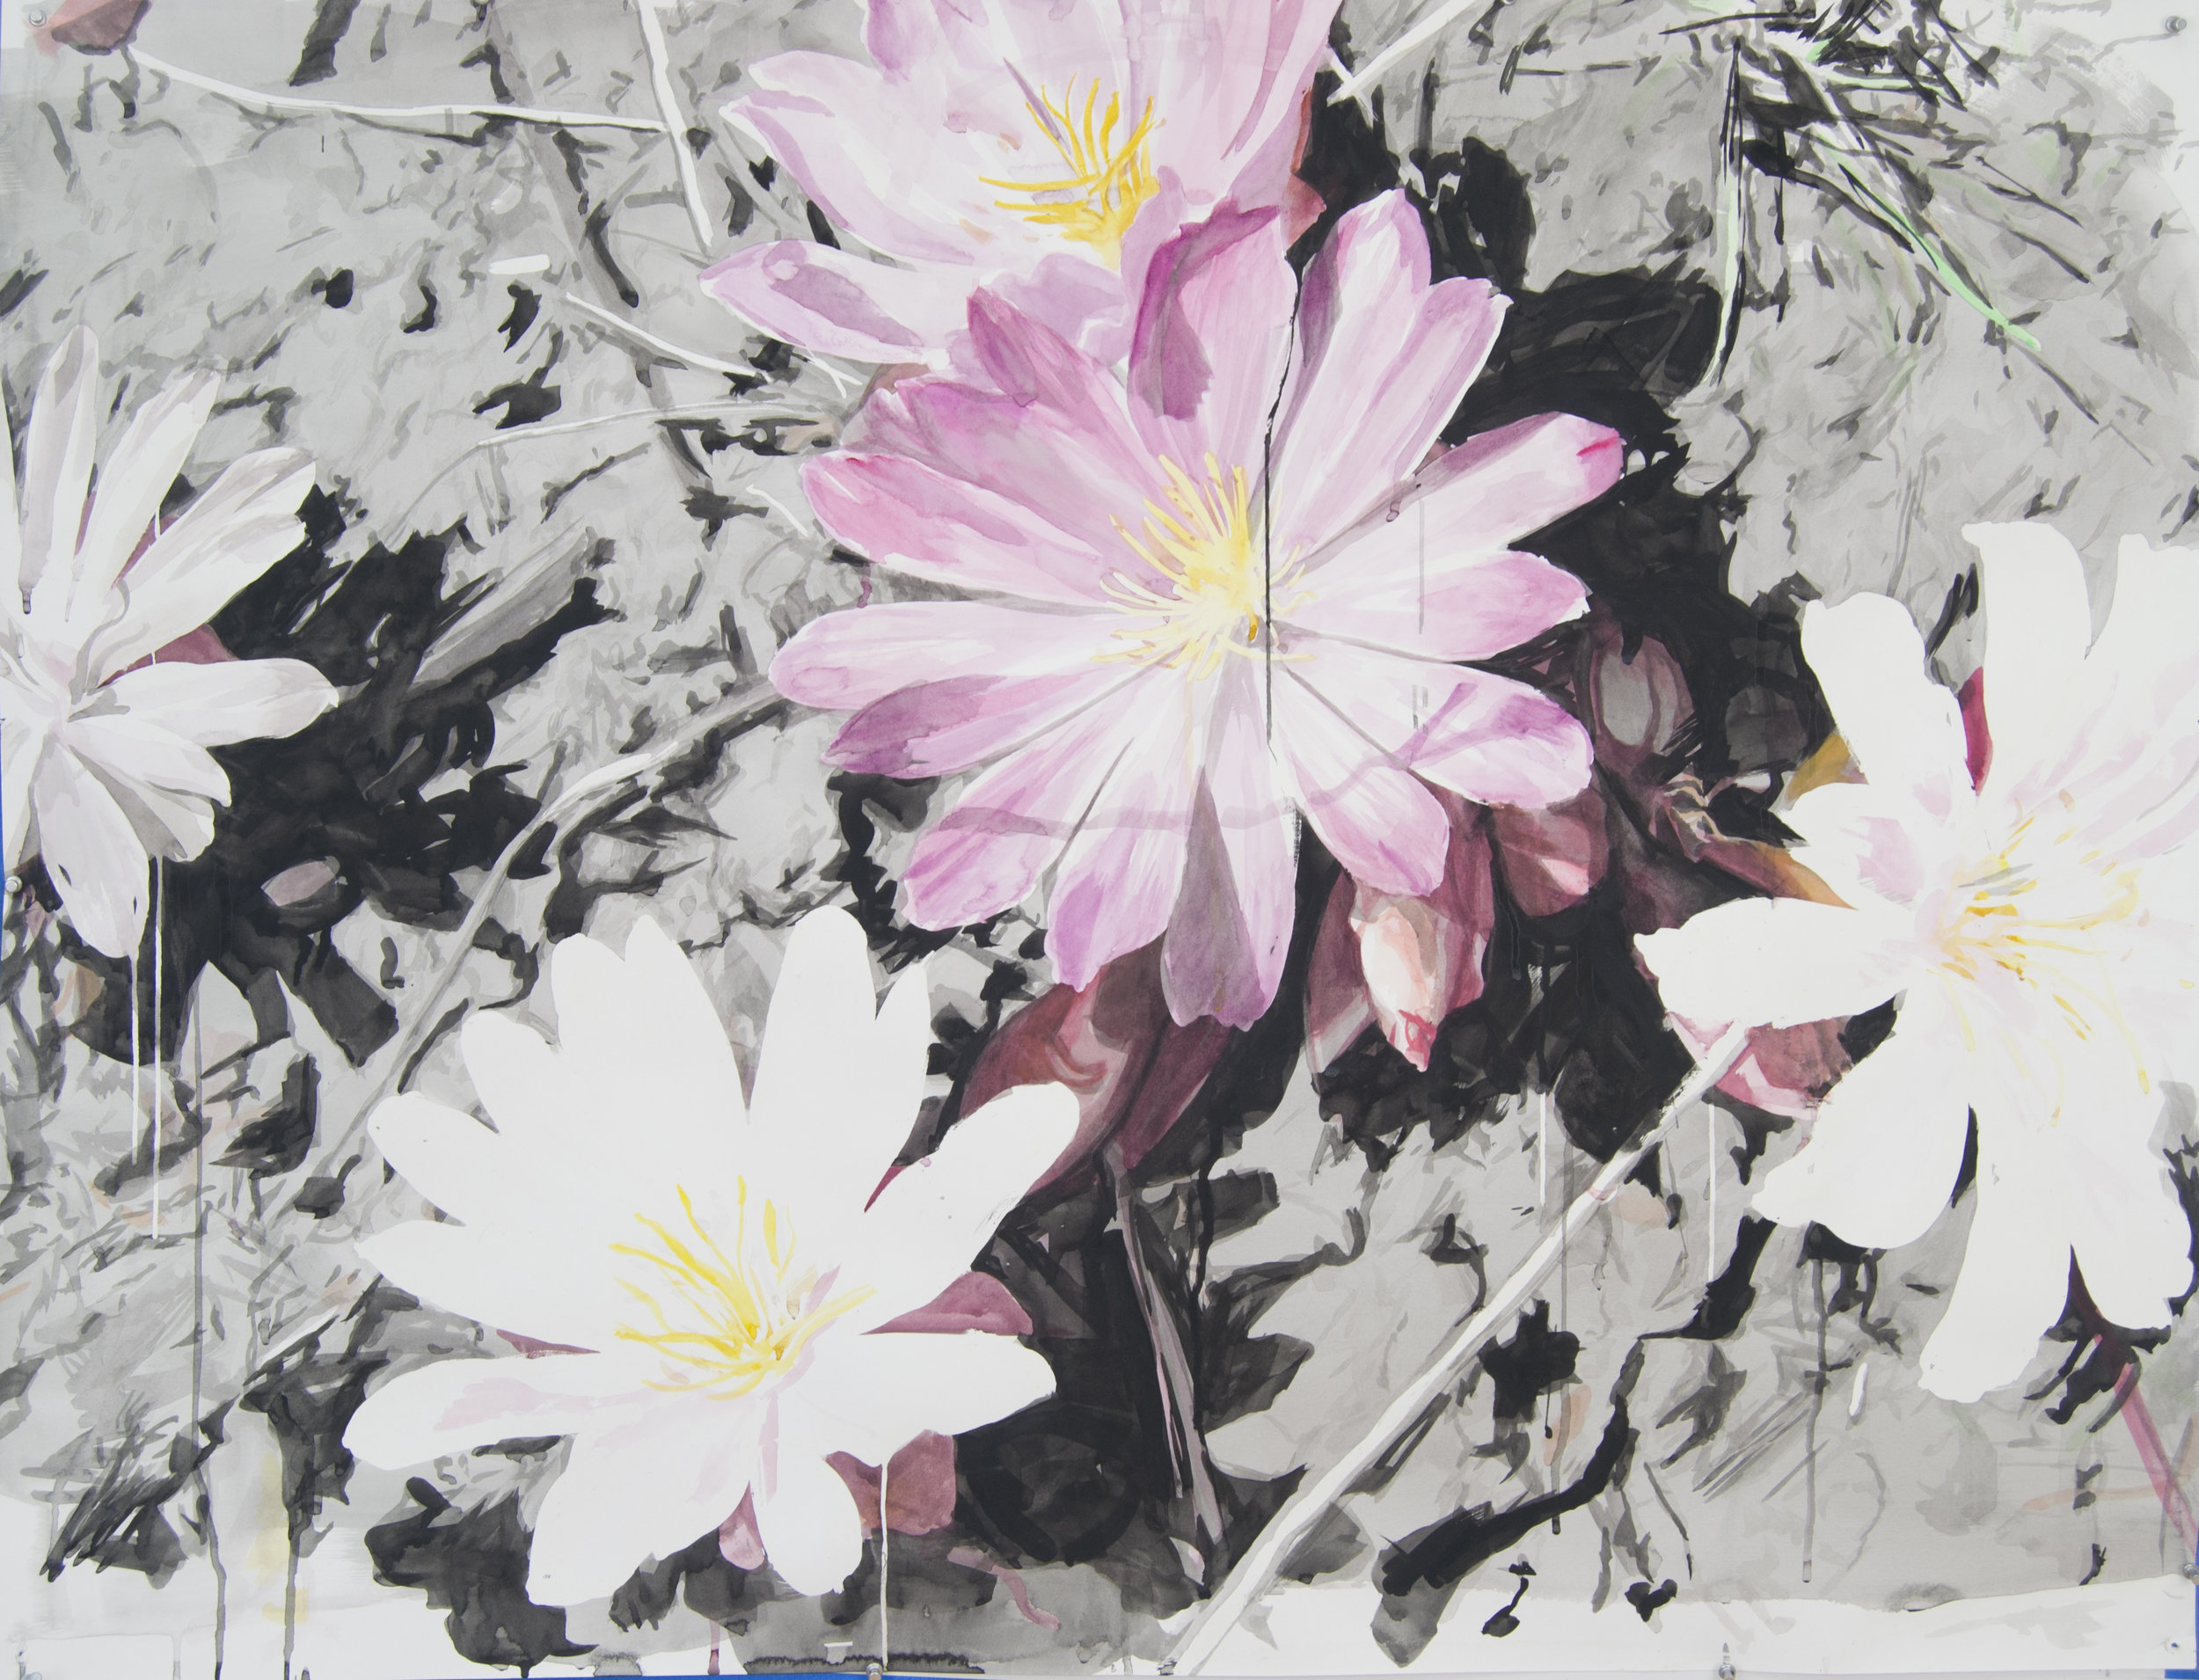 Pink and White Lewisias w Silhouettes